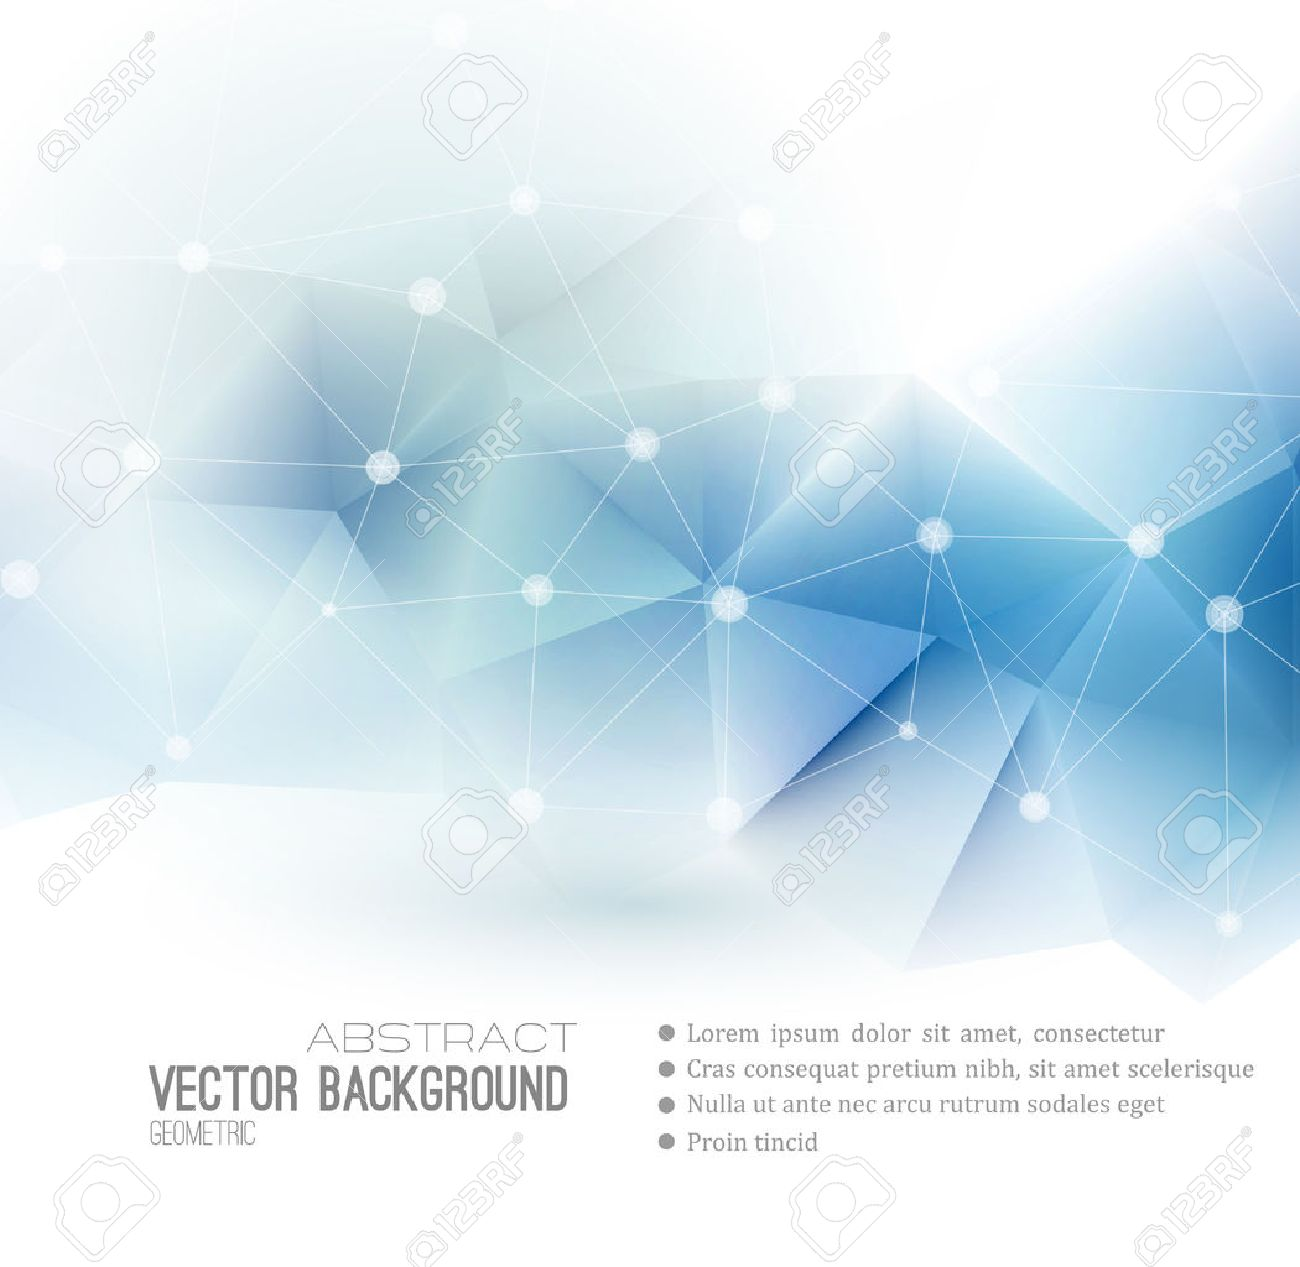 Vector Abstract science Background. Polygonal geometric design. EPS 10 - 46662677